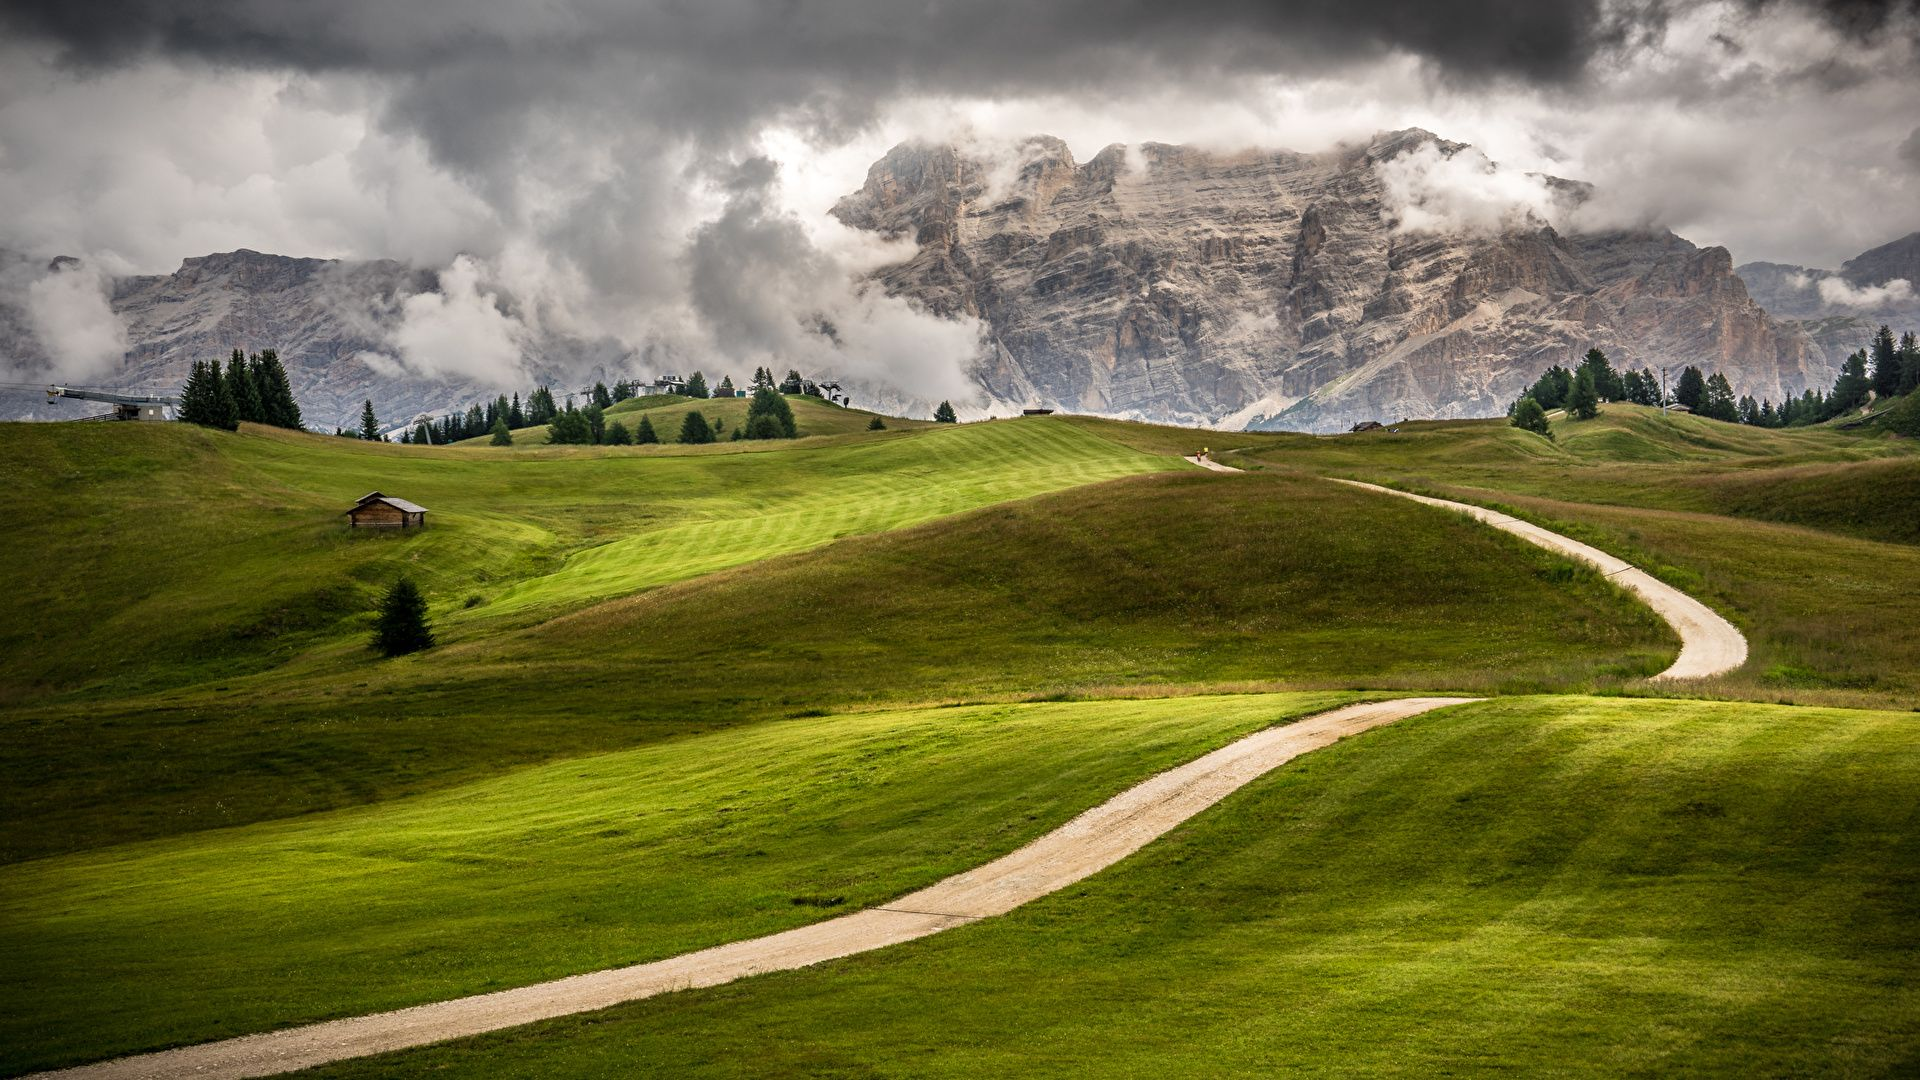 The Landscape Of Mountain And Field